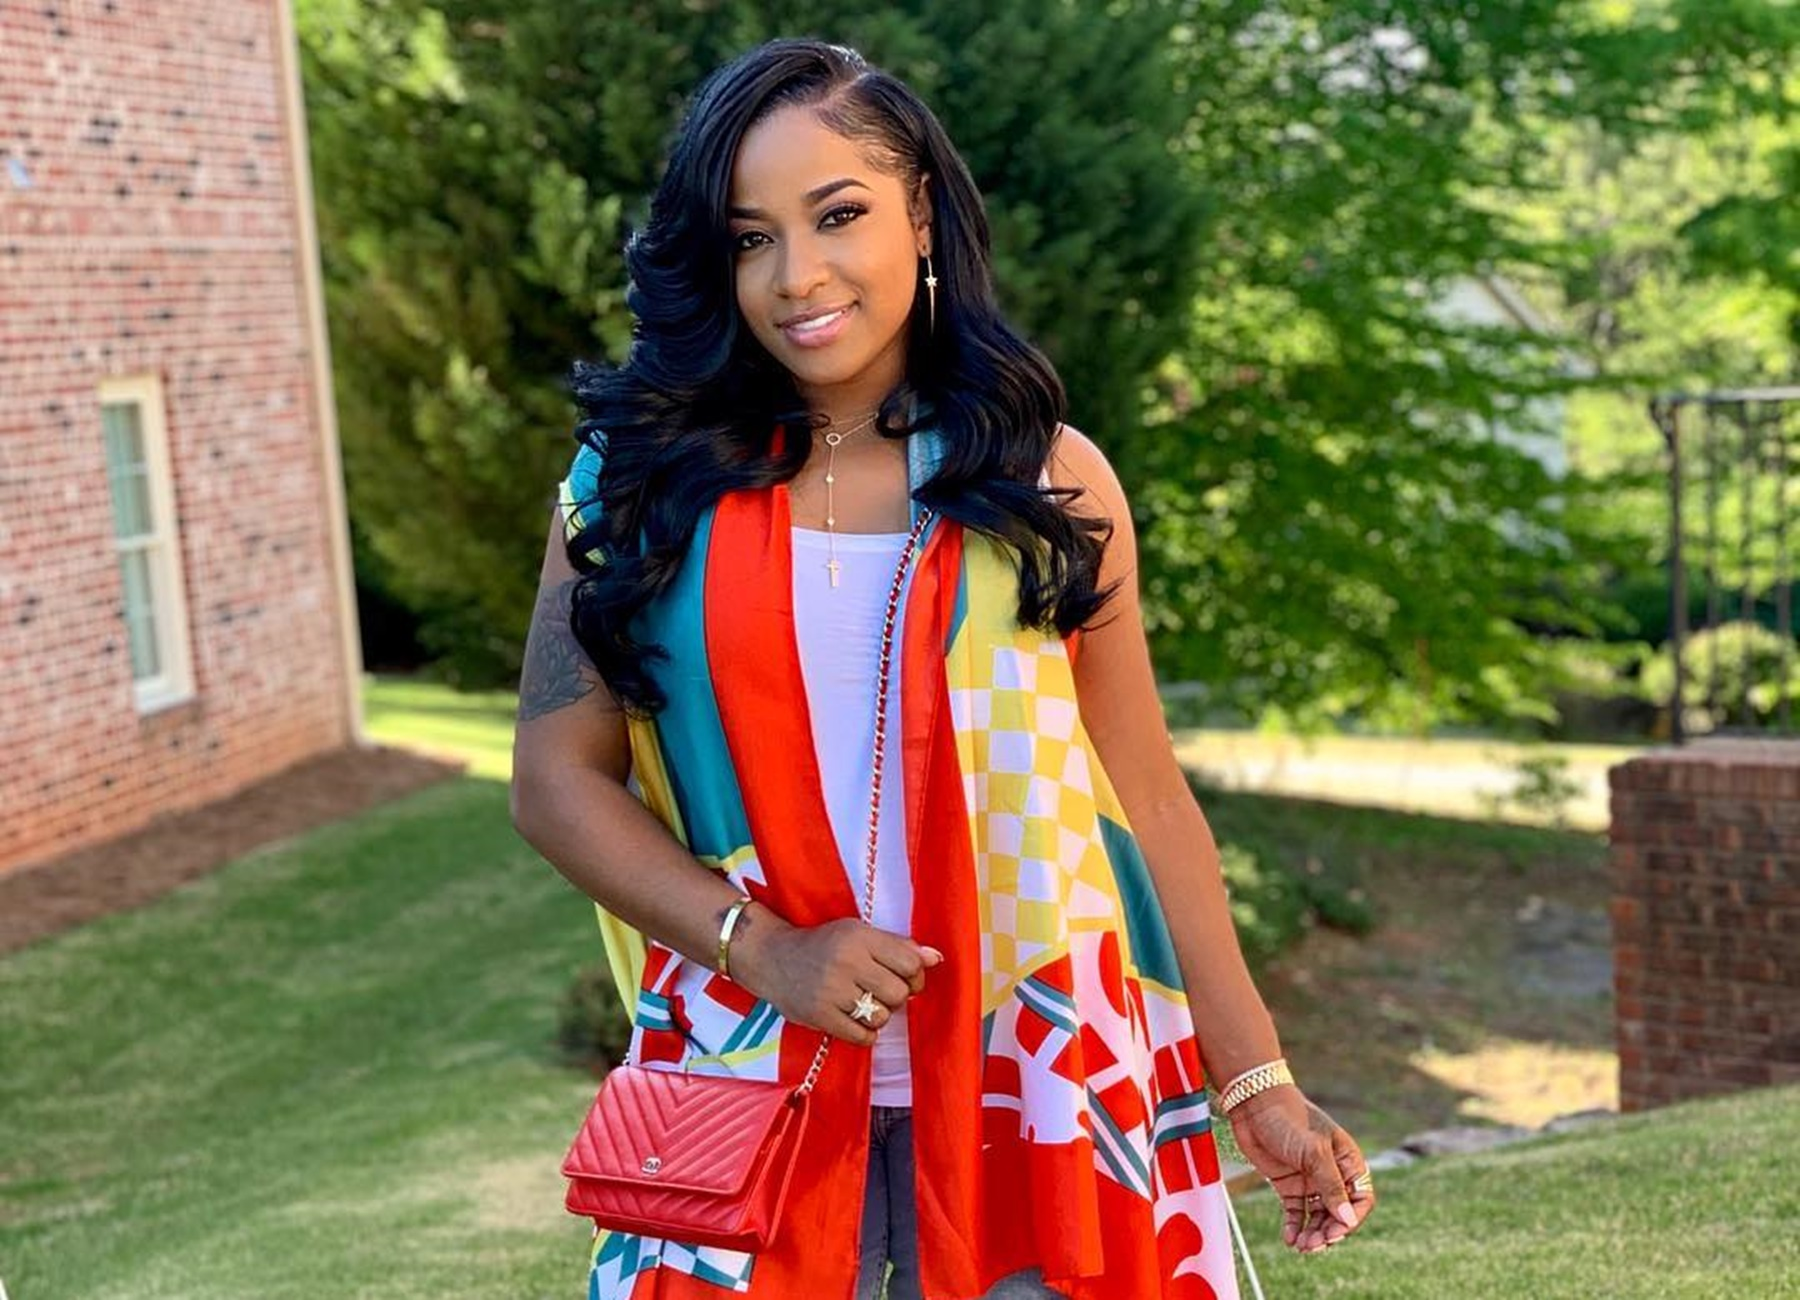 toya-wrights-fans-believe-she-should-become-a-stylist-following-her-latest-pics